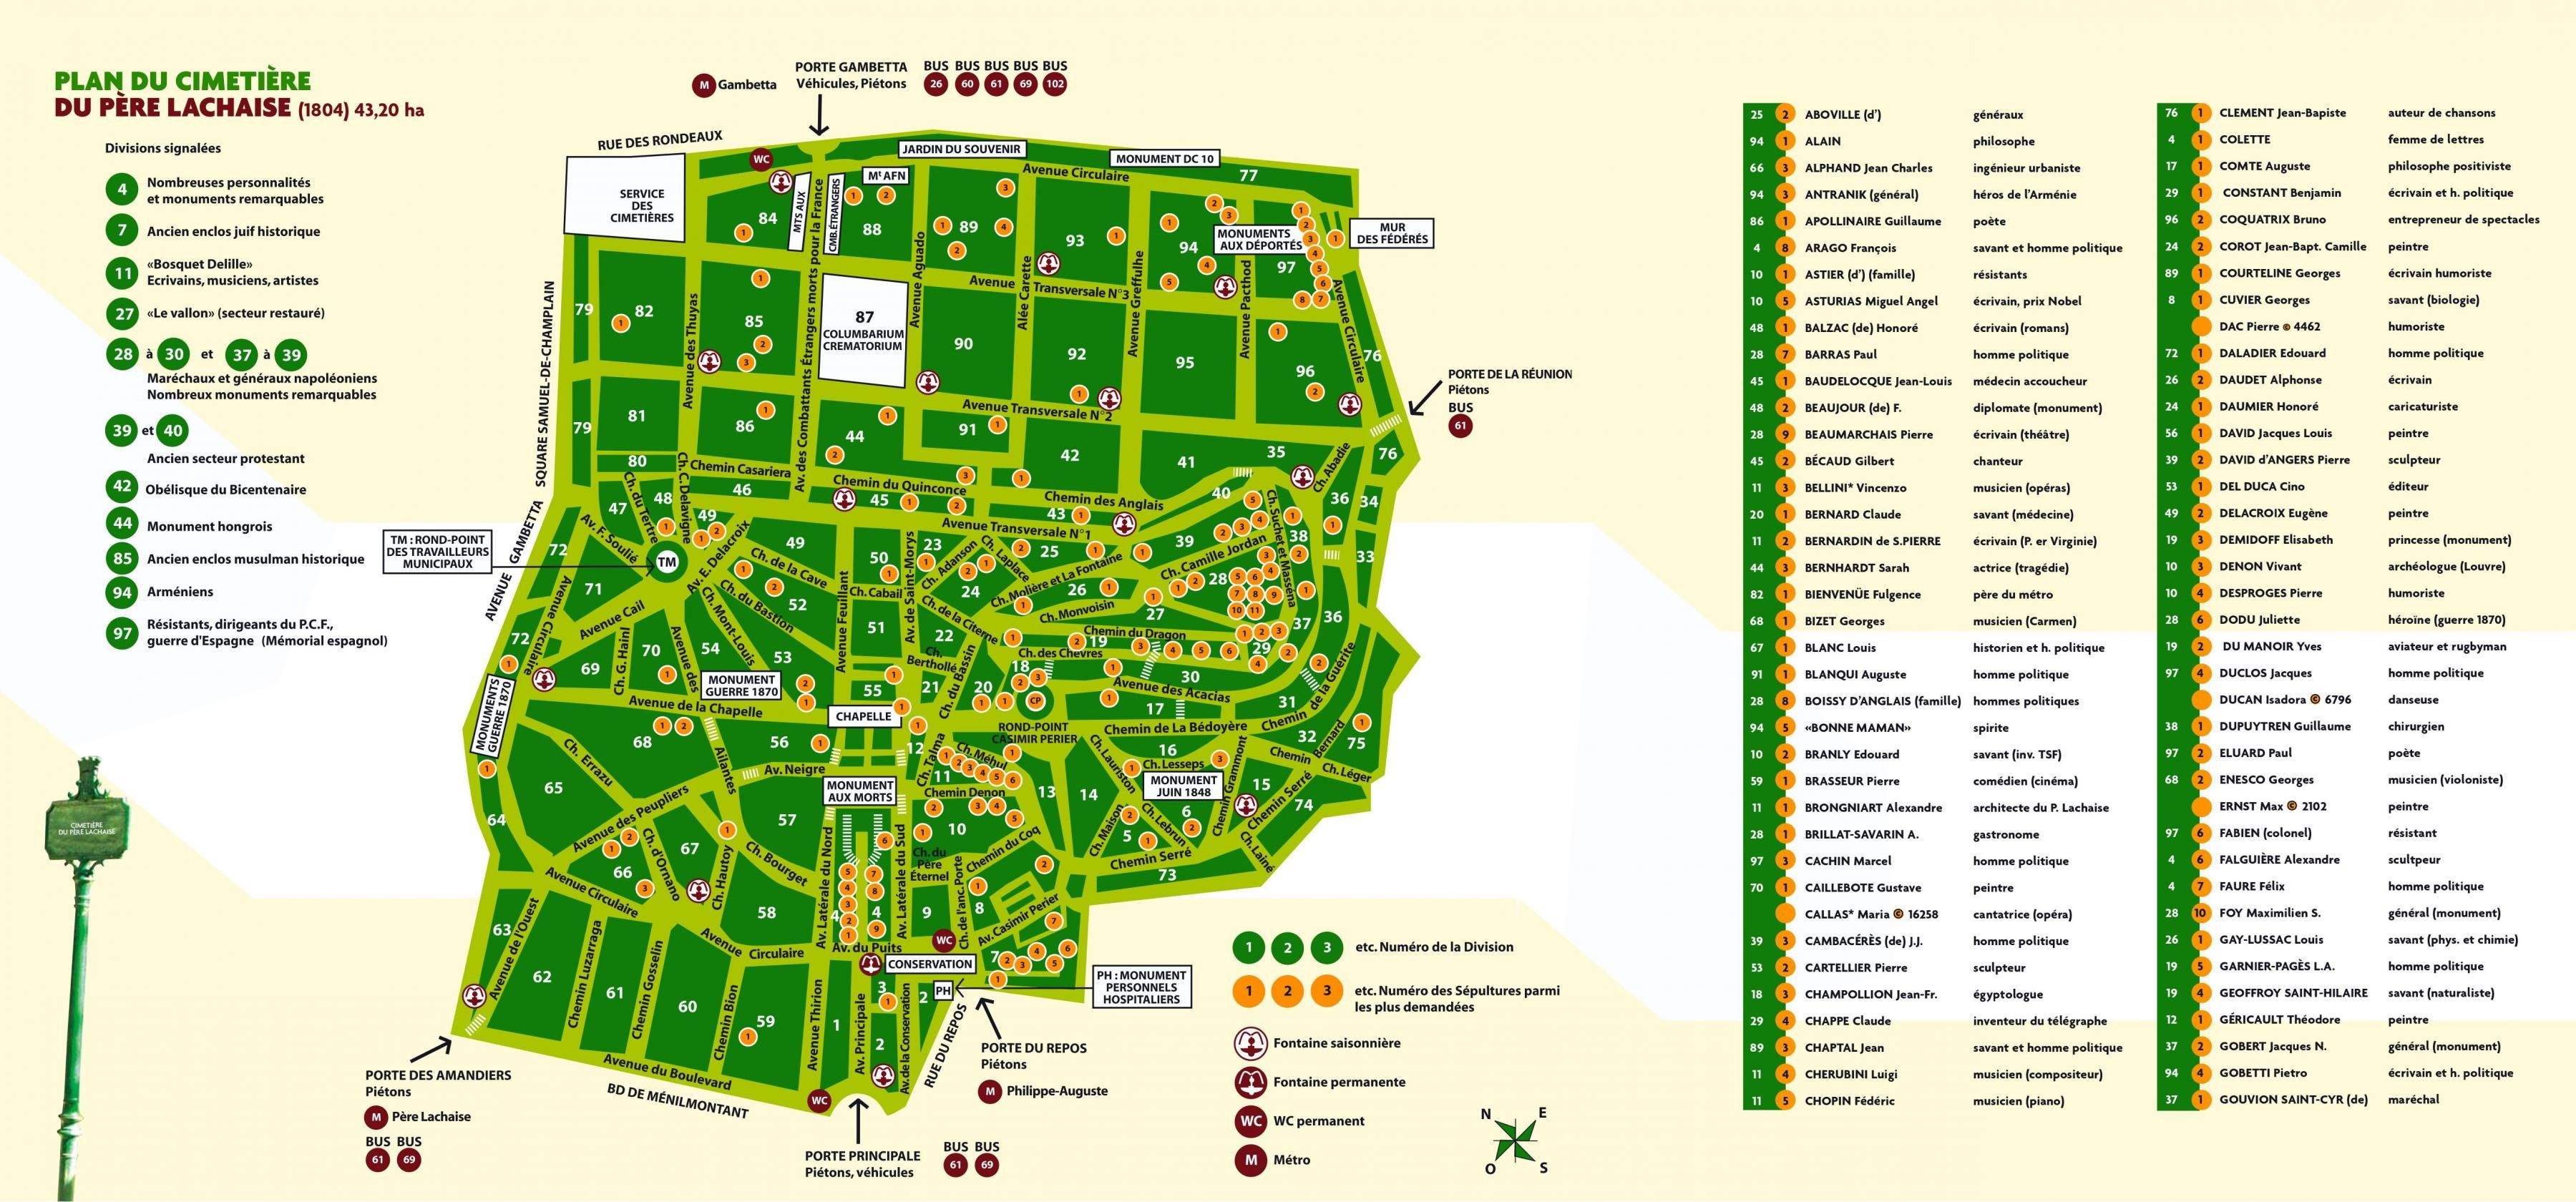 Map Of Pere Lachaise Cemetery Http Map Of Paris Com Monuments Maps Pere Lachaise Cemetery Map Pere Lachaise Cemetery Versailles Map Pere Lachaise